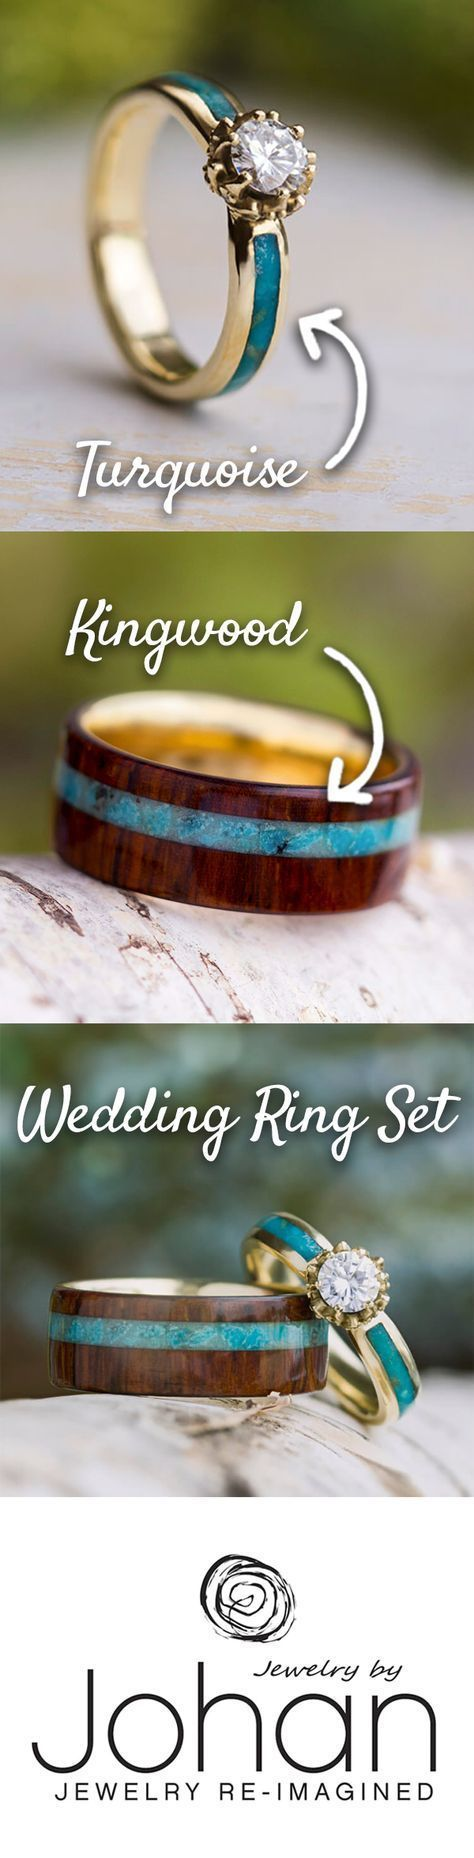 Turquoise Wedding Ring Set, Moissanite Engagement Ring With Wood Band-3635